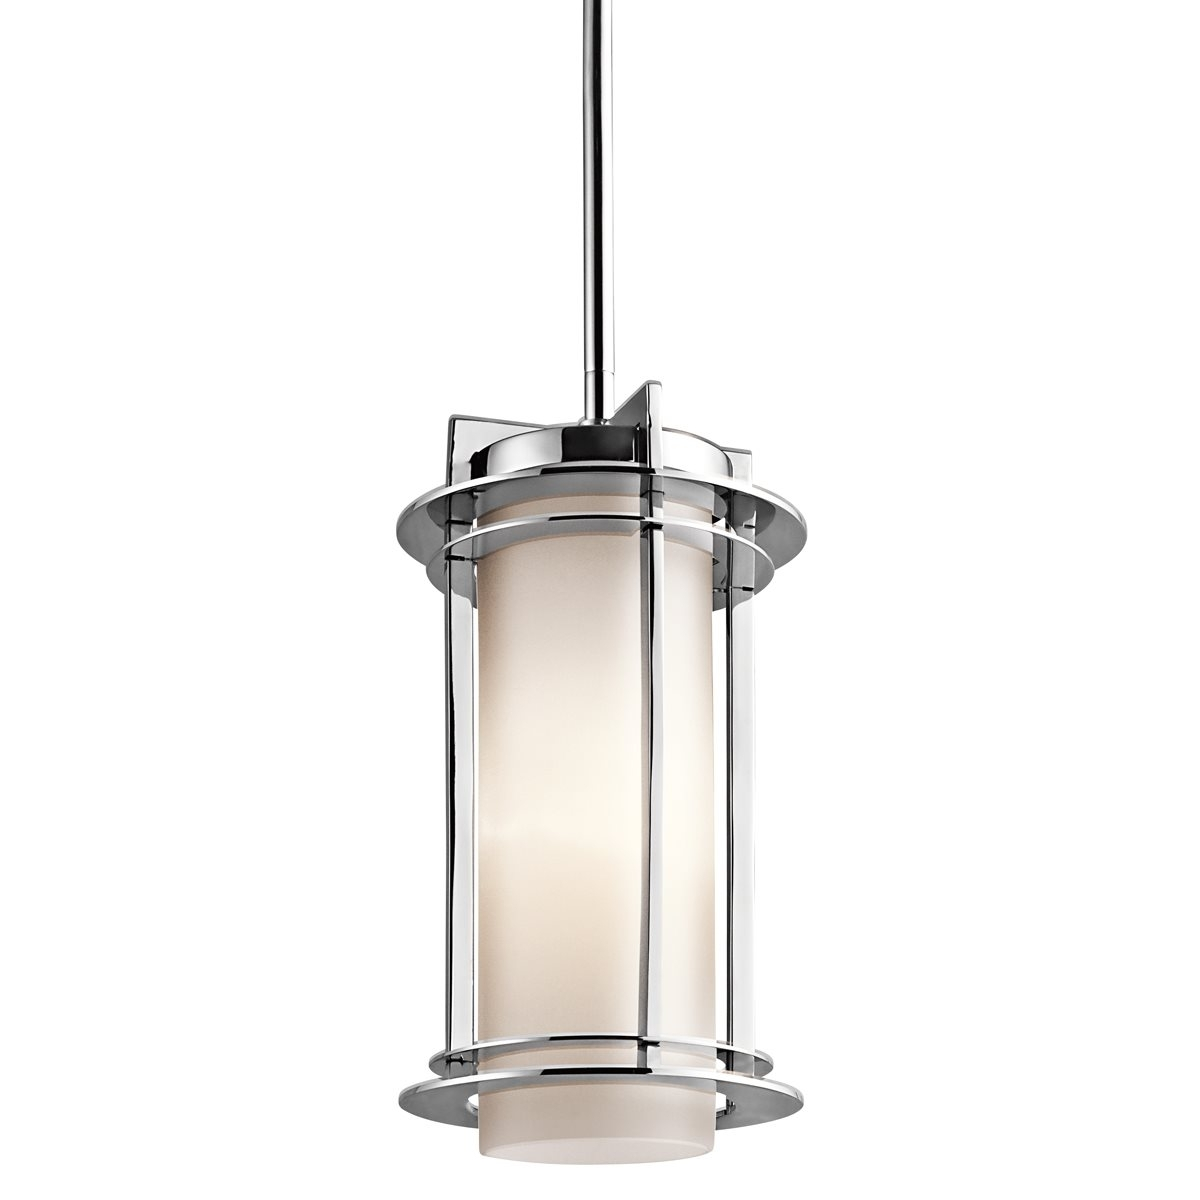 Inspiration about Pendant Lighting Ideas: Modern Outdoor Pendant Lighting Fixtures Intended For Kichler Outdoor Hanging Lights (#3 of 15)